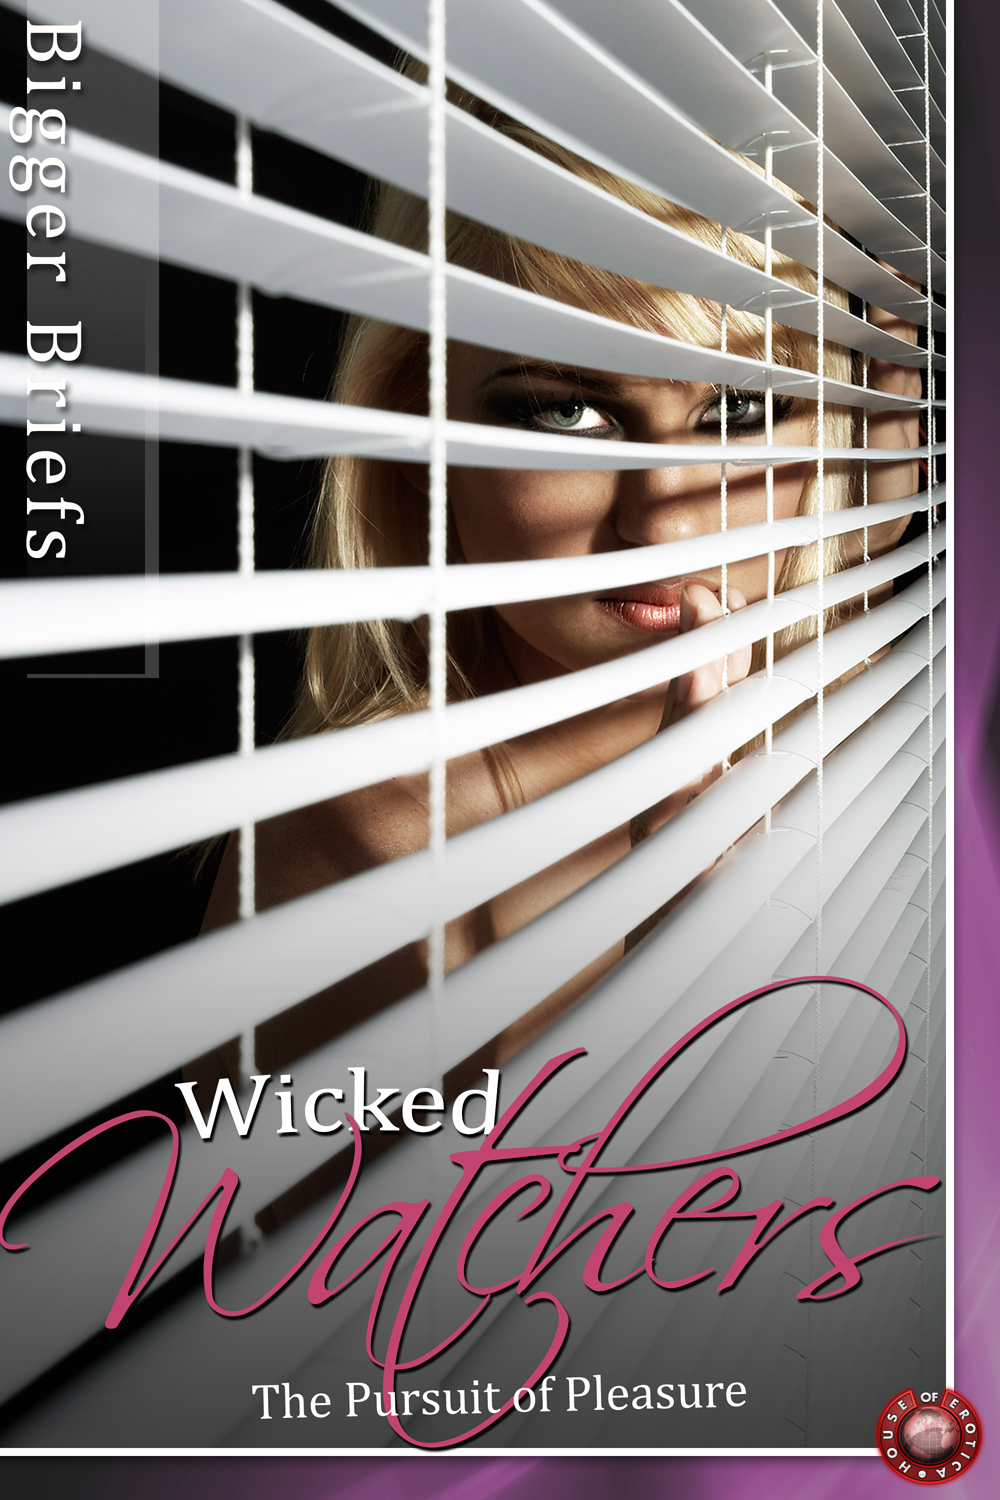 Wicked Watchers - The Pursuit of Pleasure